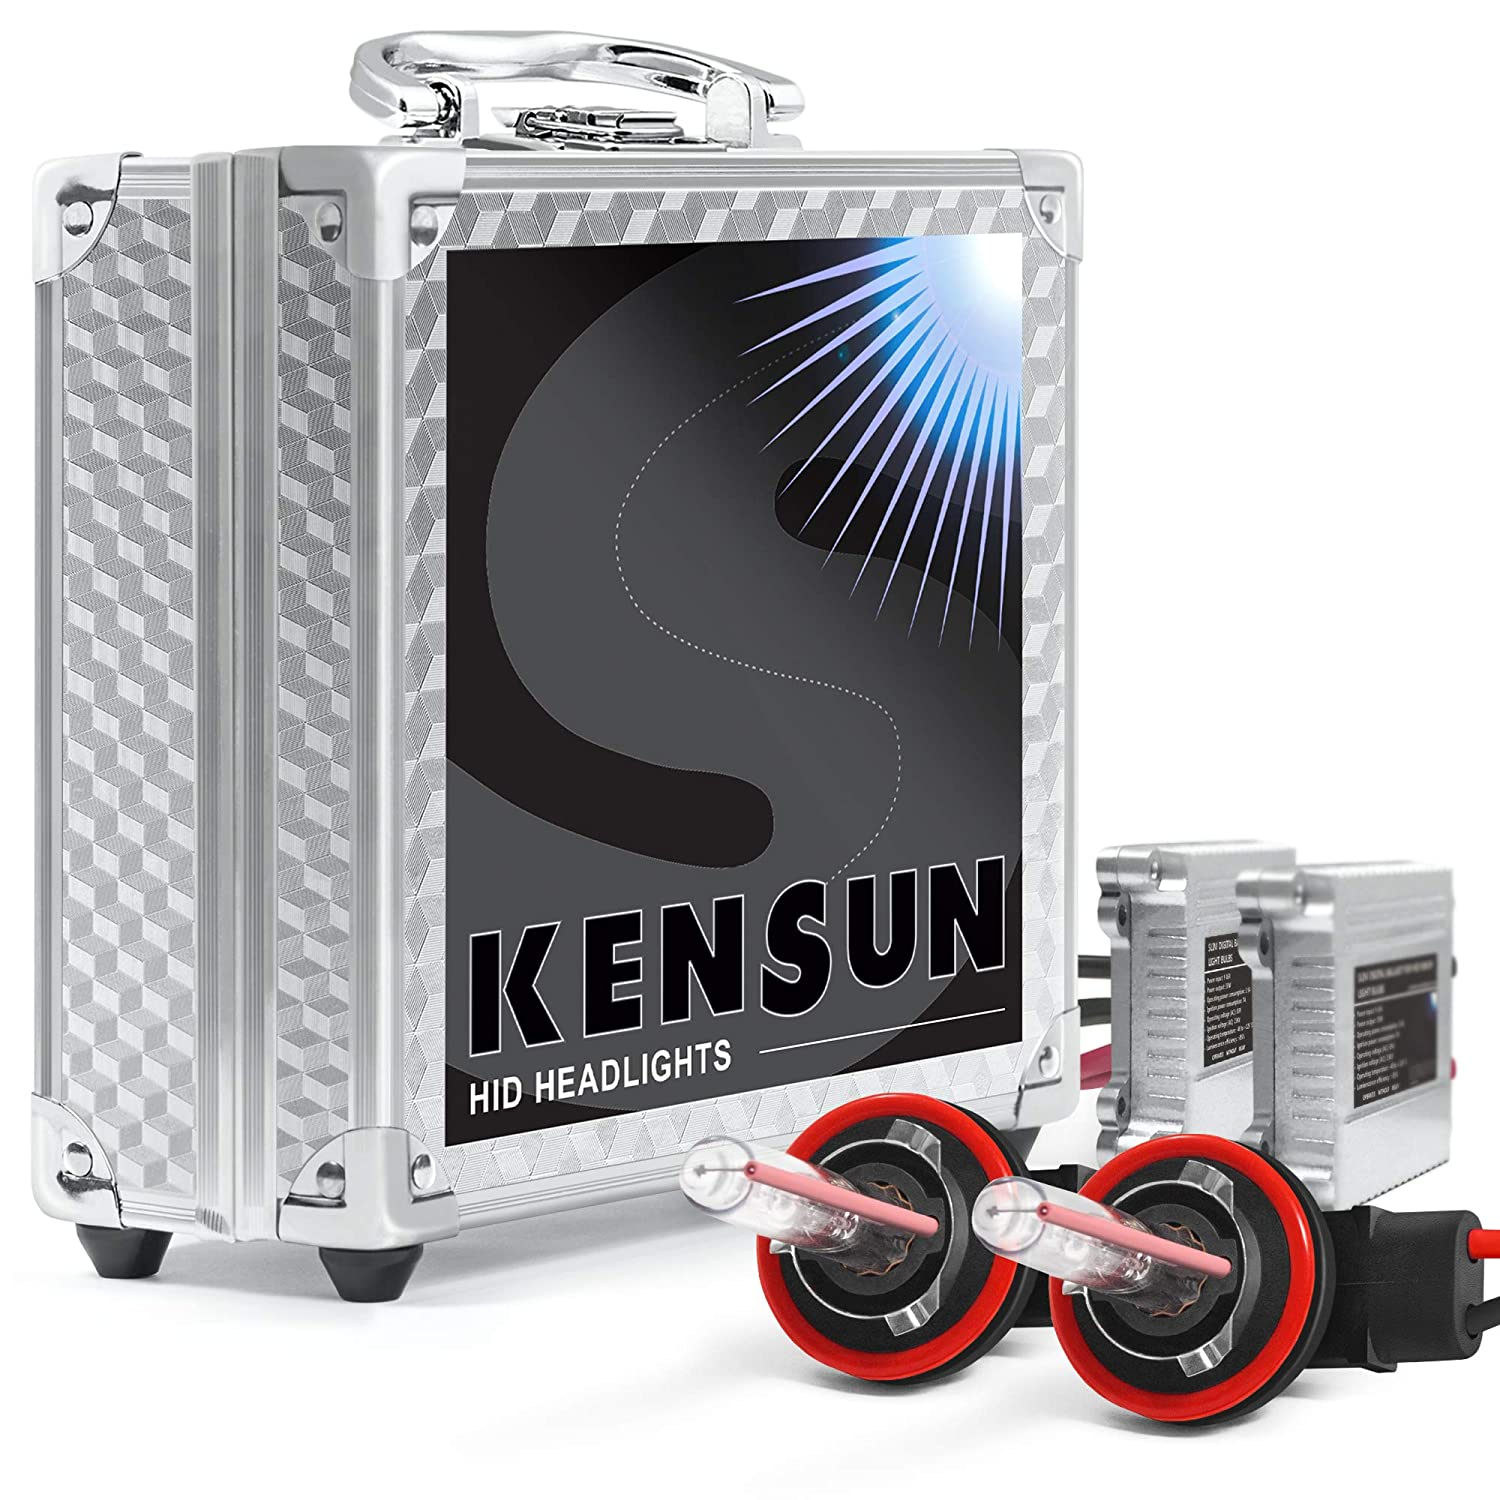 Xenon Hid Conversion Kit Wiring Diagram Kensun All Bulb Sizes And Colors With Slim Digital Ballasts H11 6000k 2 Year Warranty Automotive